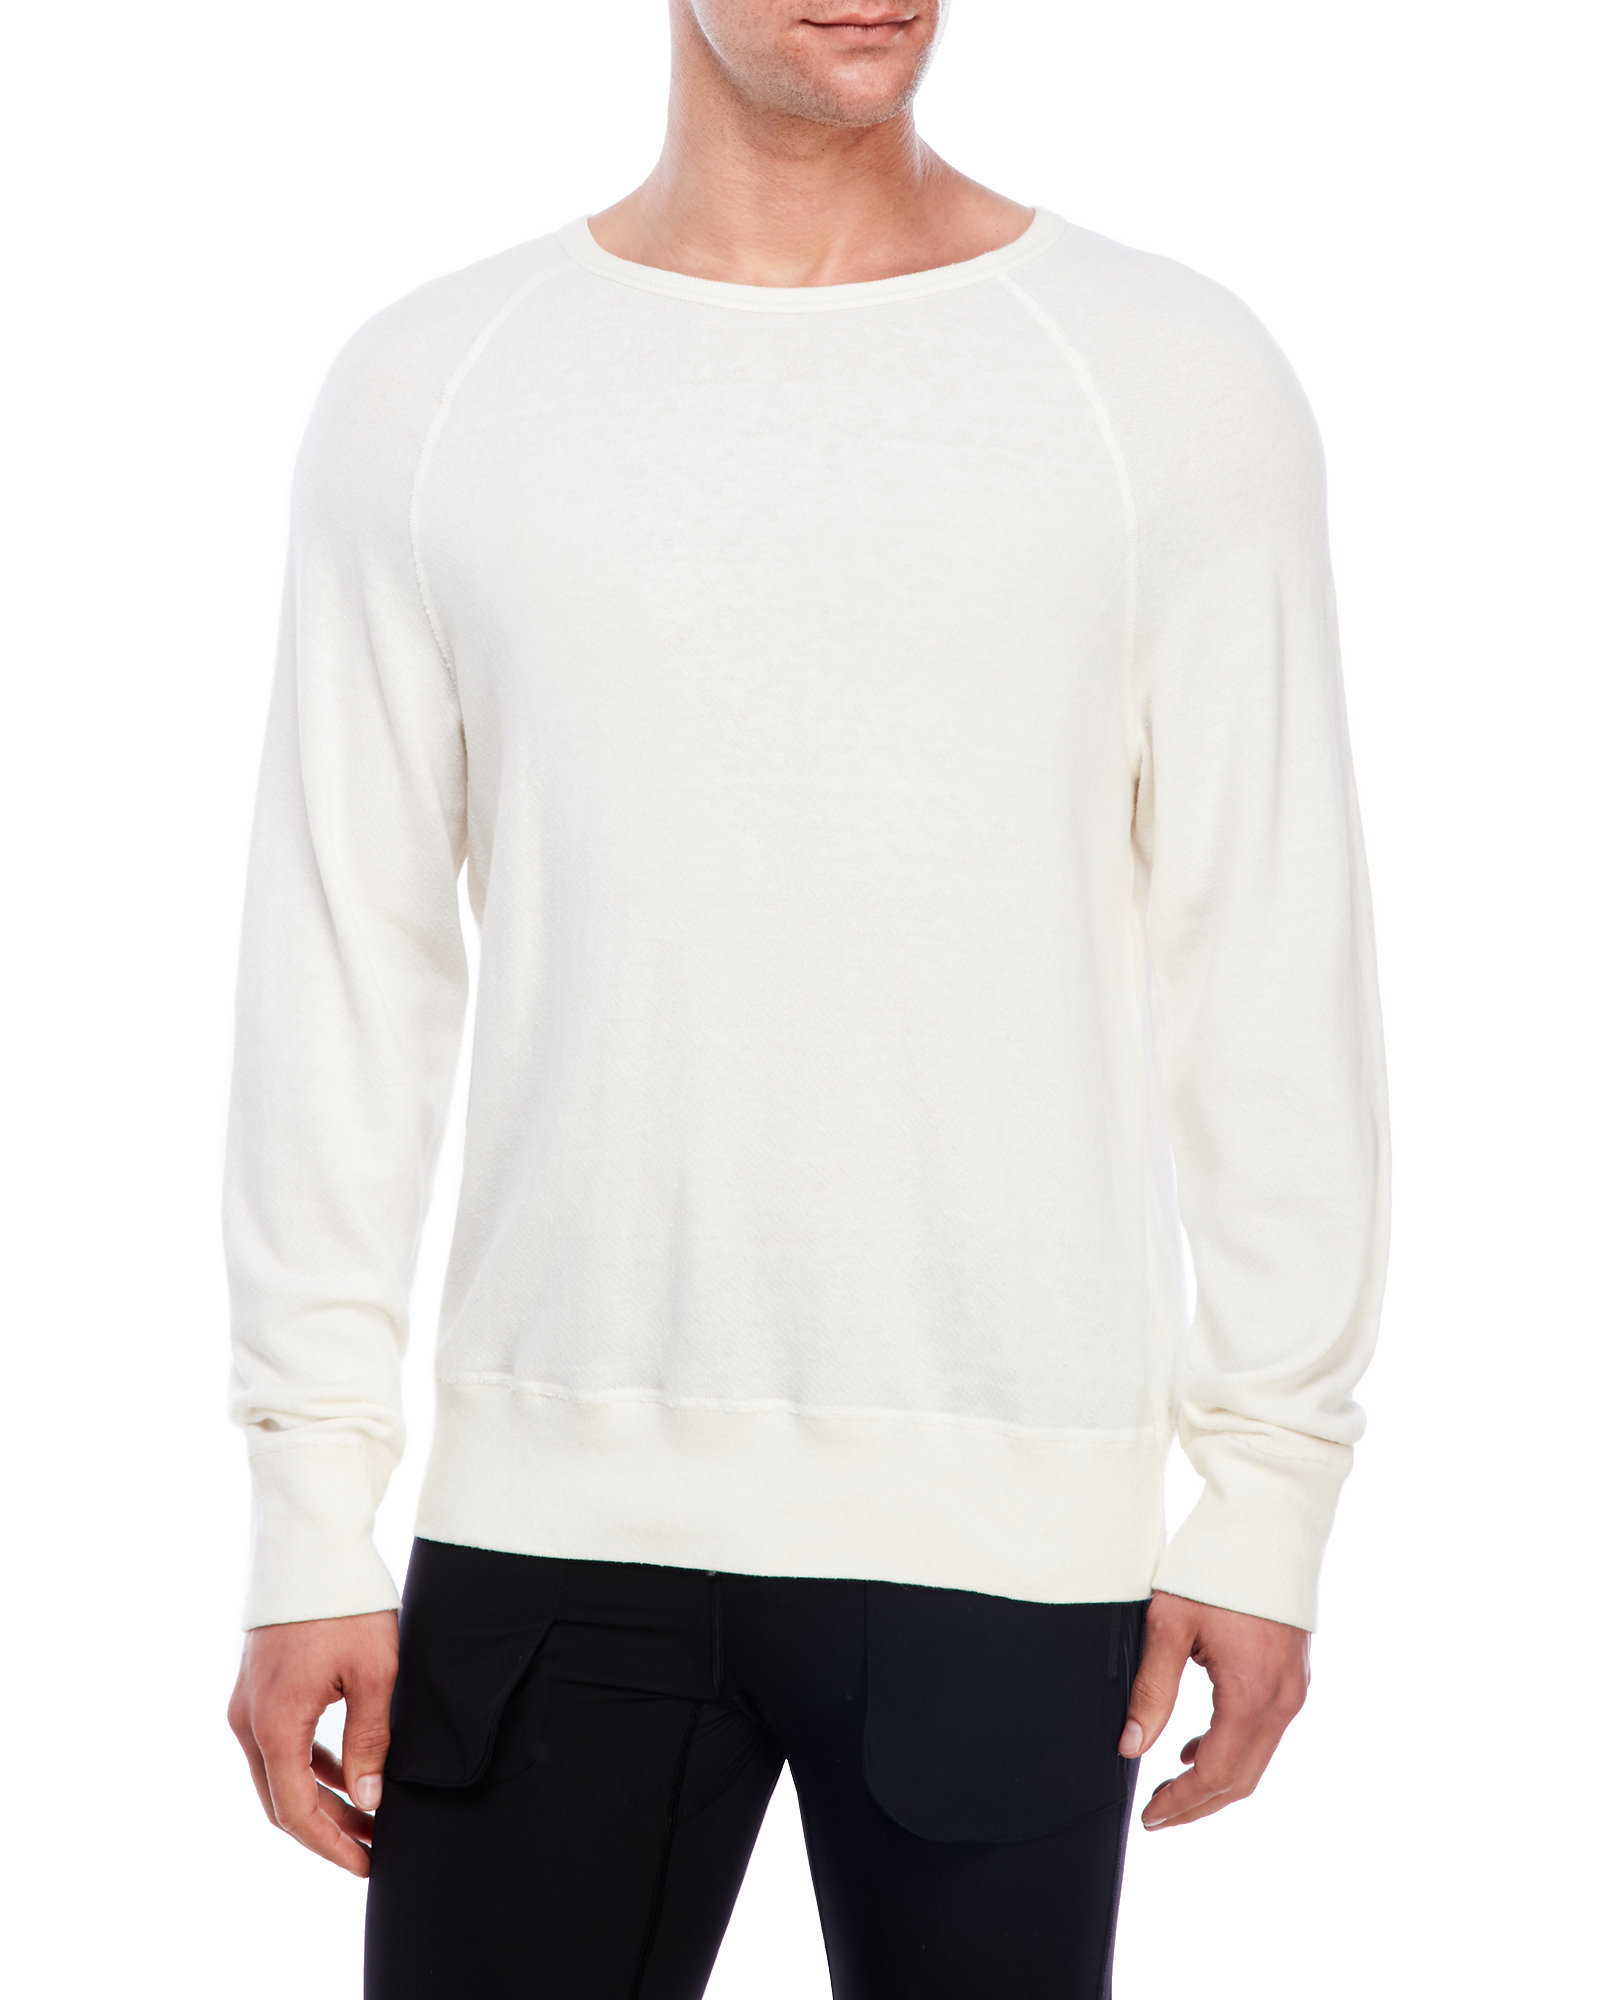 acne studios terry knit raglan pullover in white for men lyst. Black Bedroom Furniture Sets. Home Design Ideas